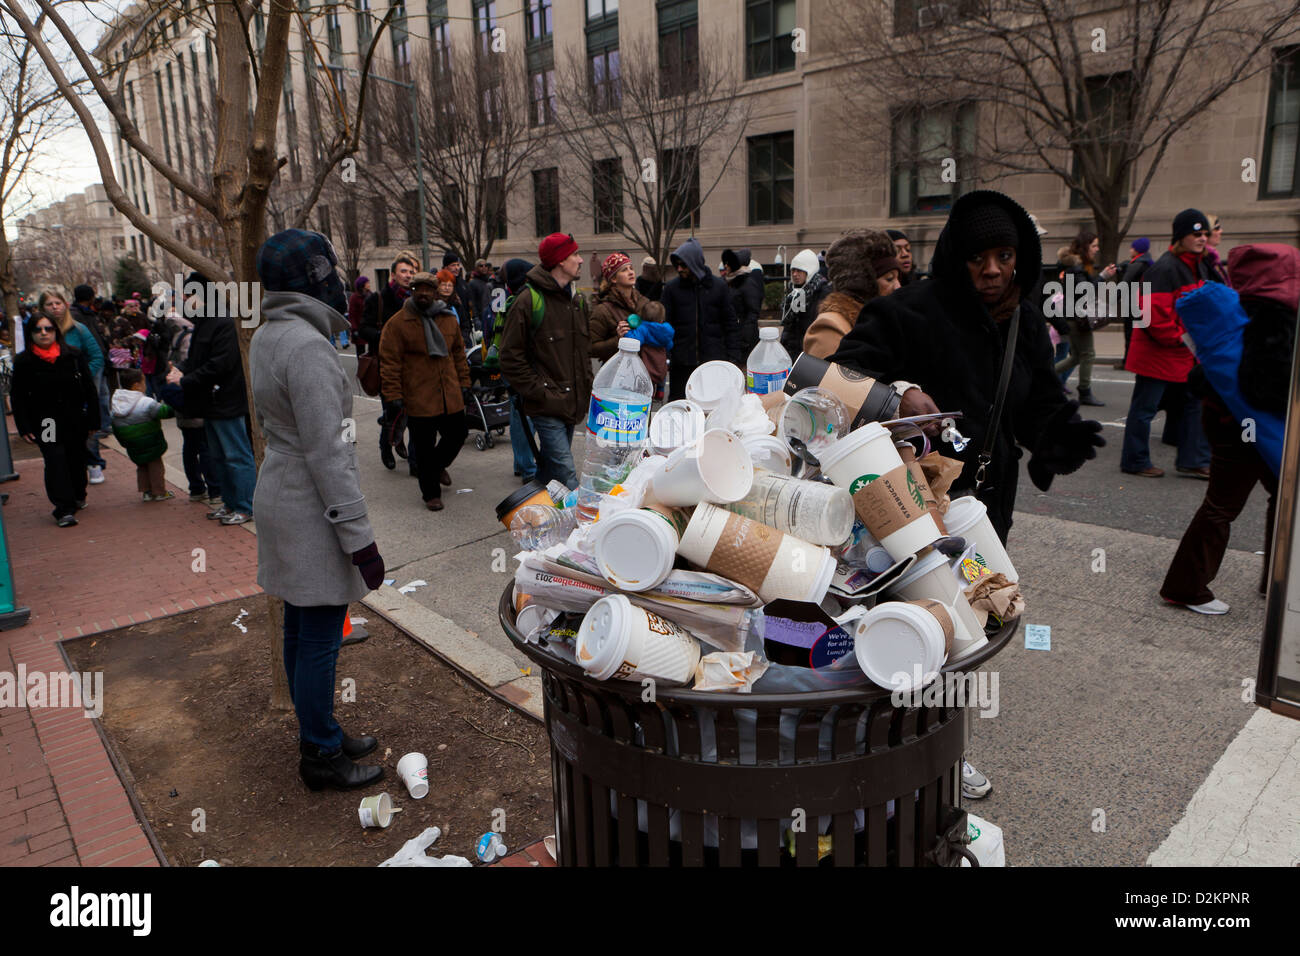 Discarded coffee cups overflowing from public trash bin - Stock Image